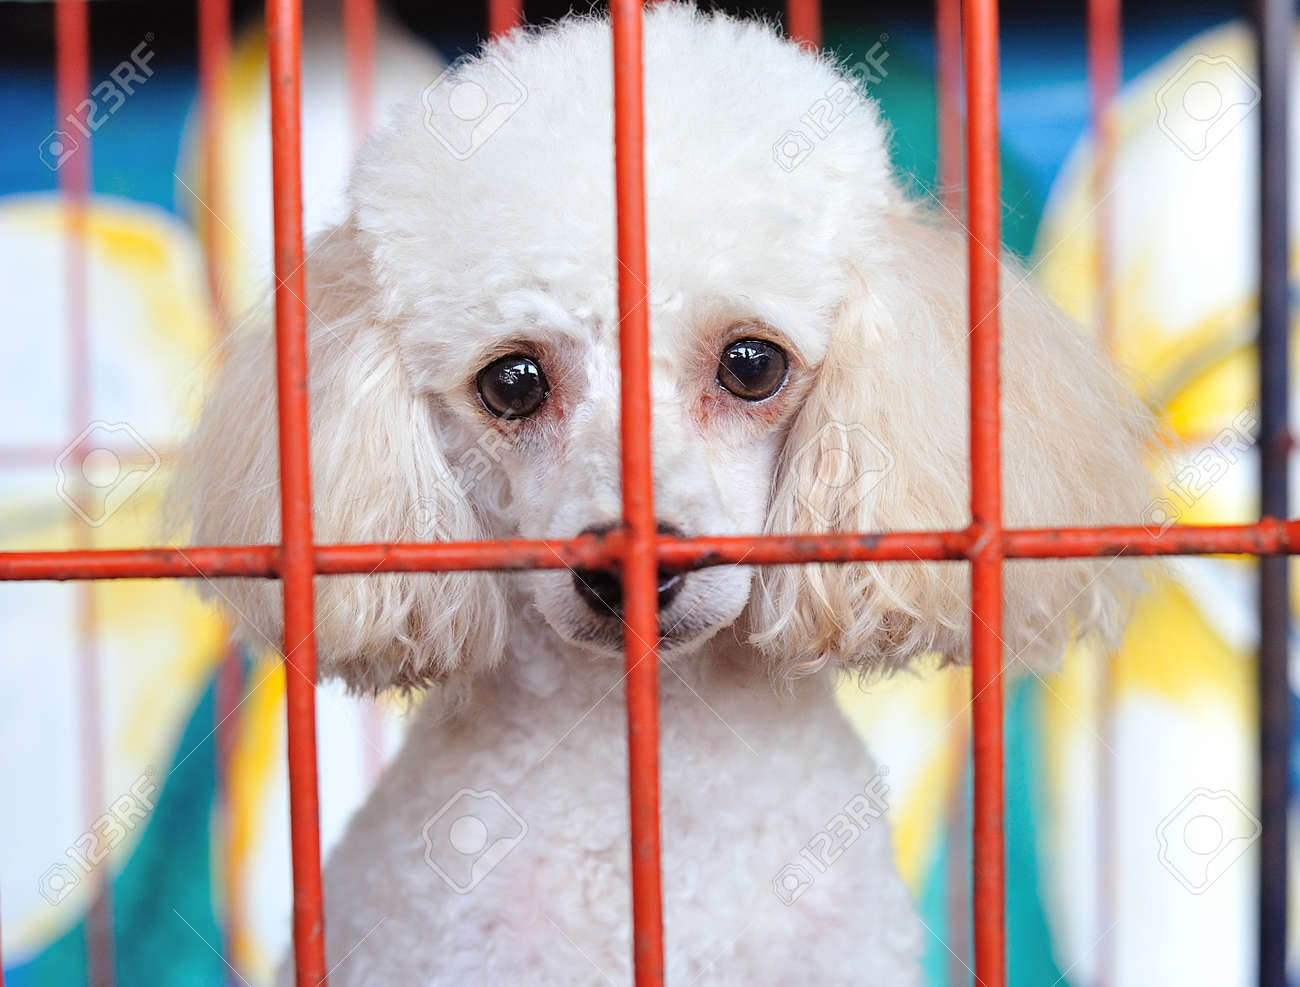 lonely dog in cage Stock Photo - 11108746